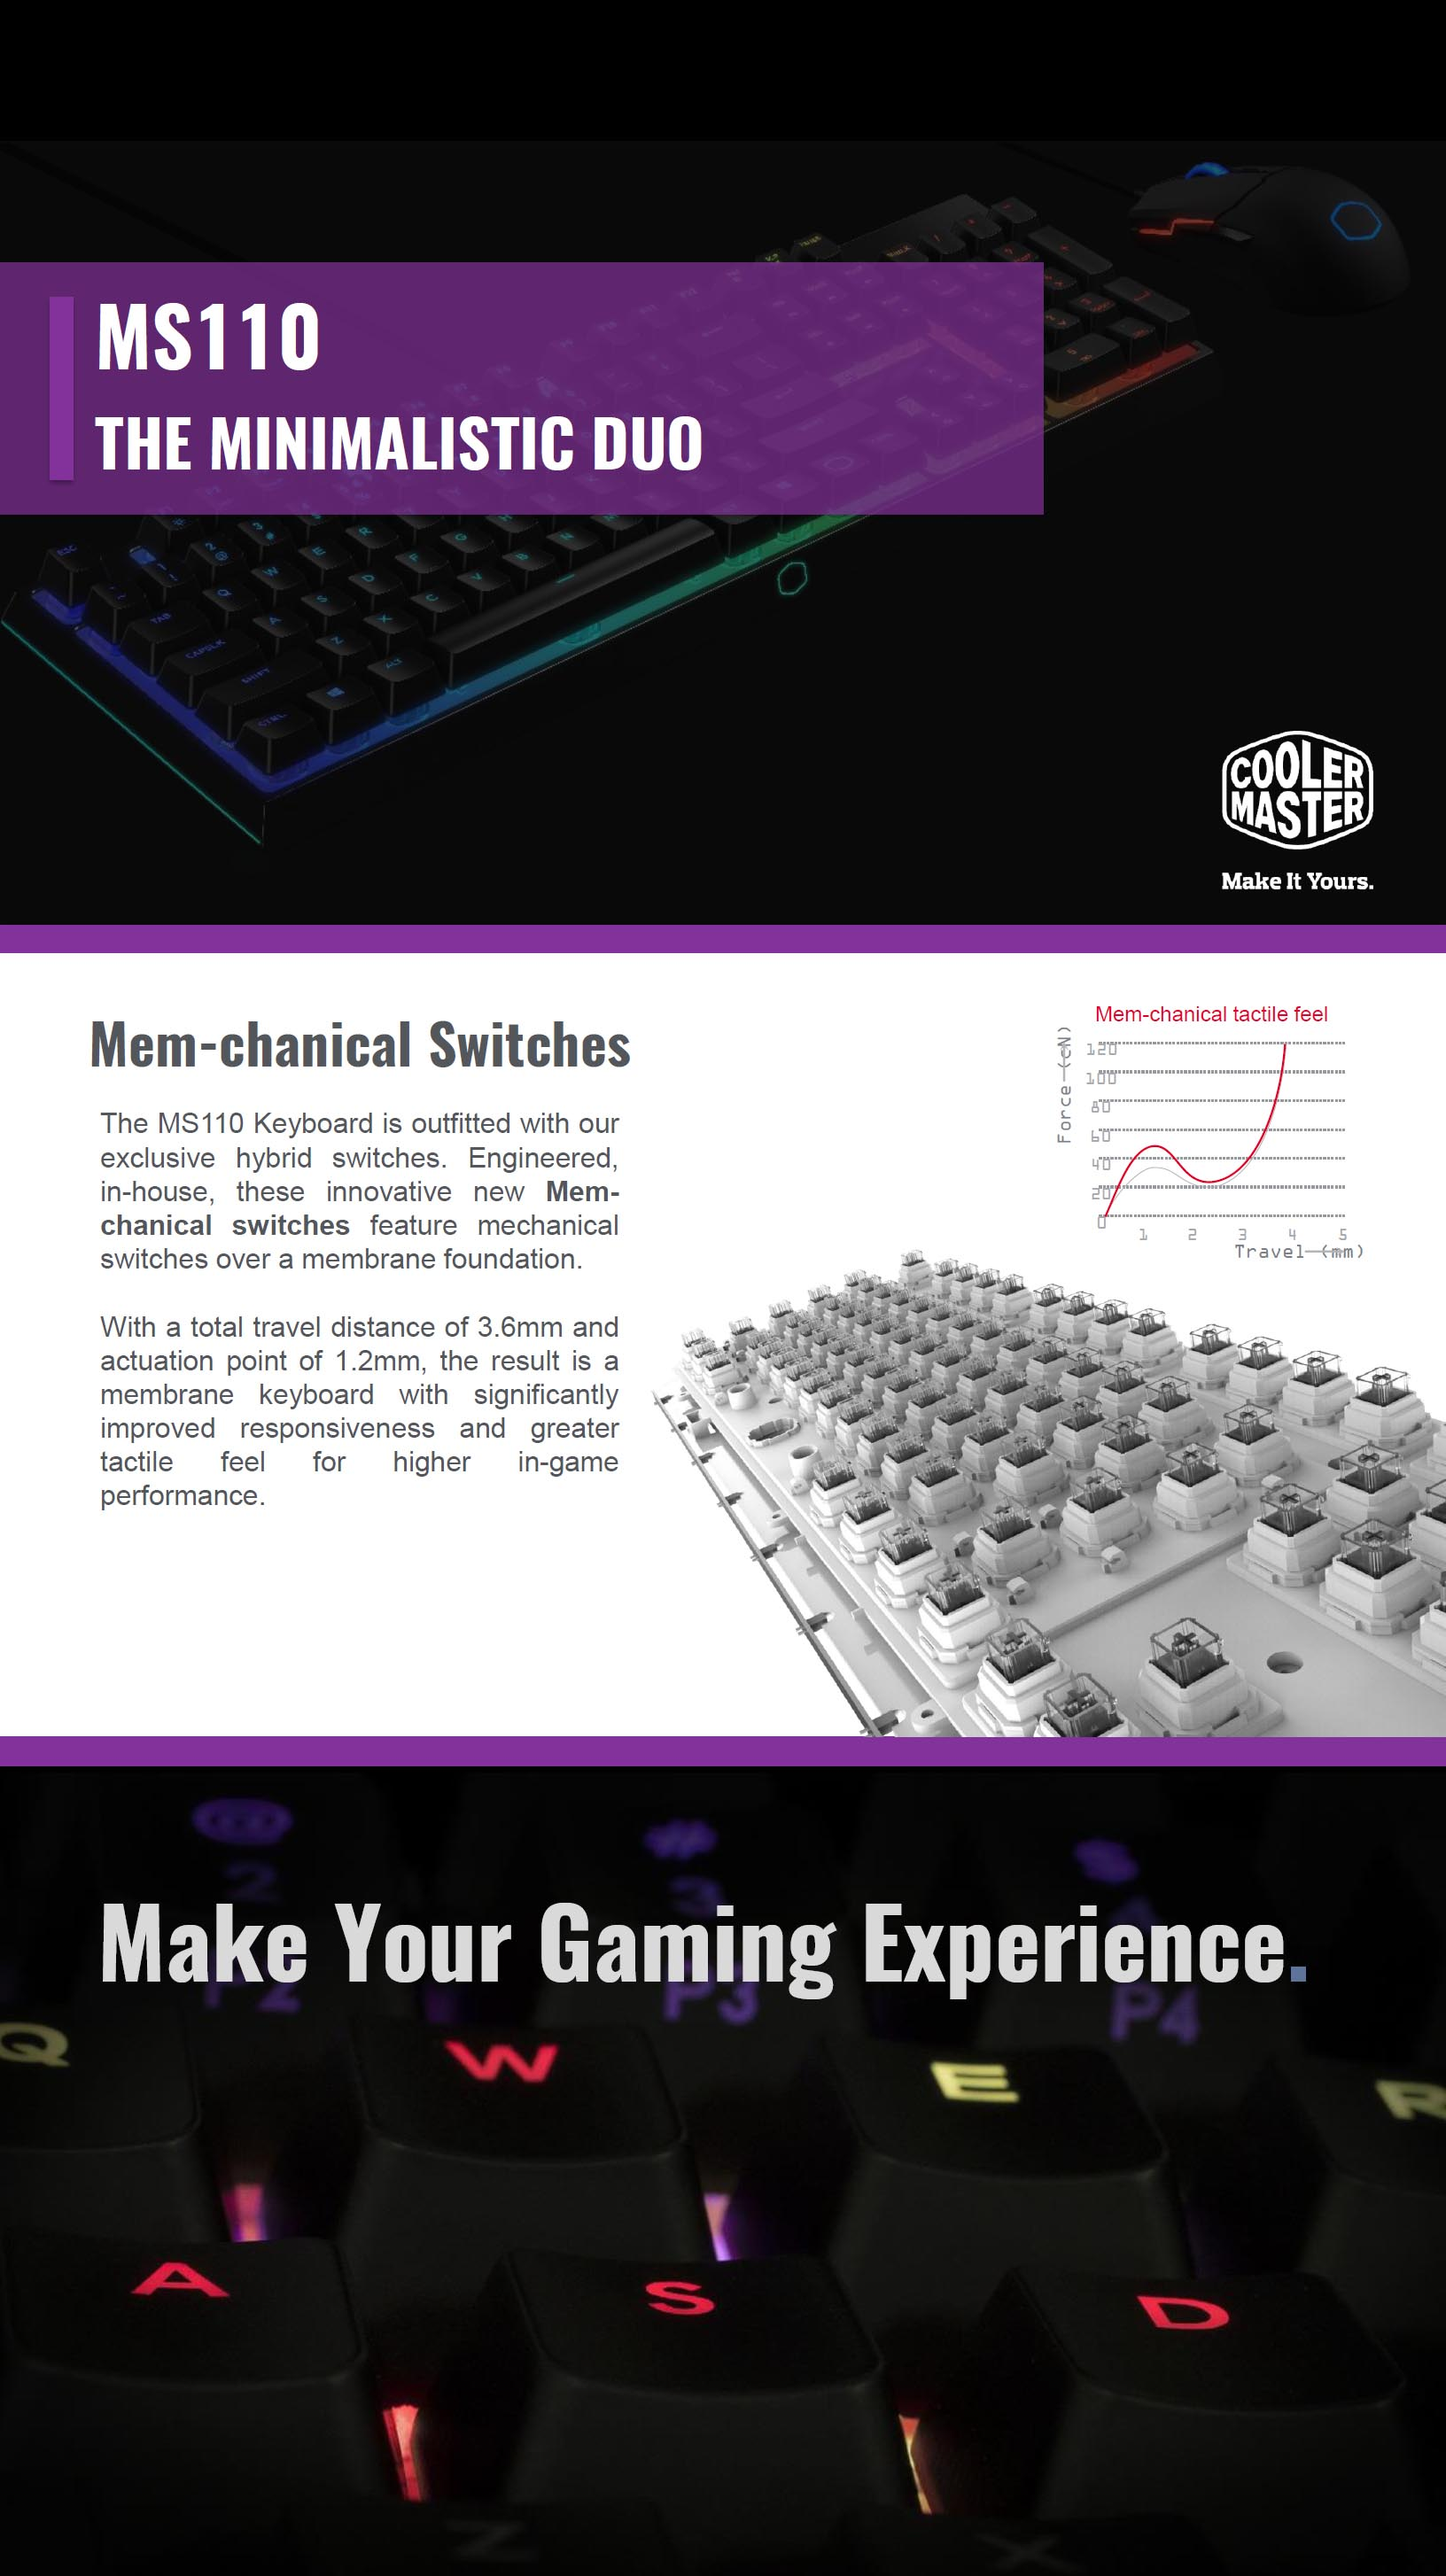 A large marketing image providing additional information about the product Cooler Master MasterSet MS110 RGB Keyboard/Mouse Combo Kit - Additional alt info not provided